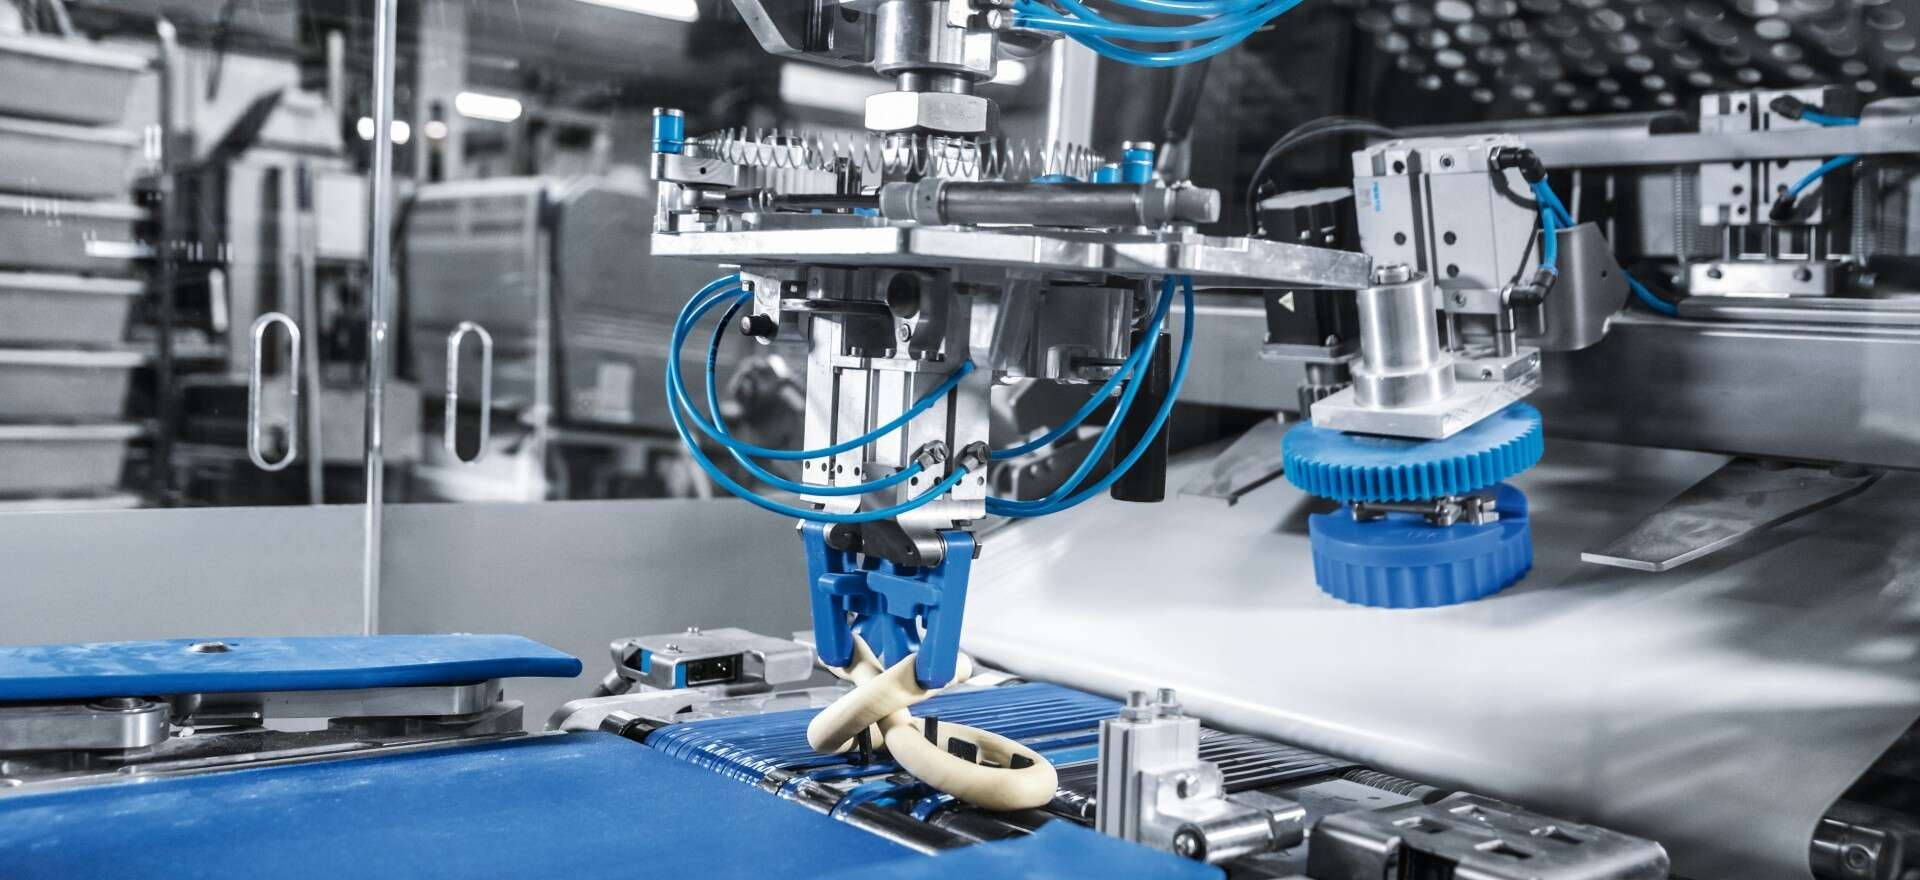 Pretzel twisting machine for automating the bakery industry